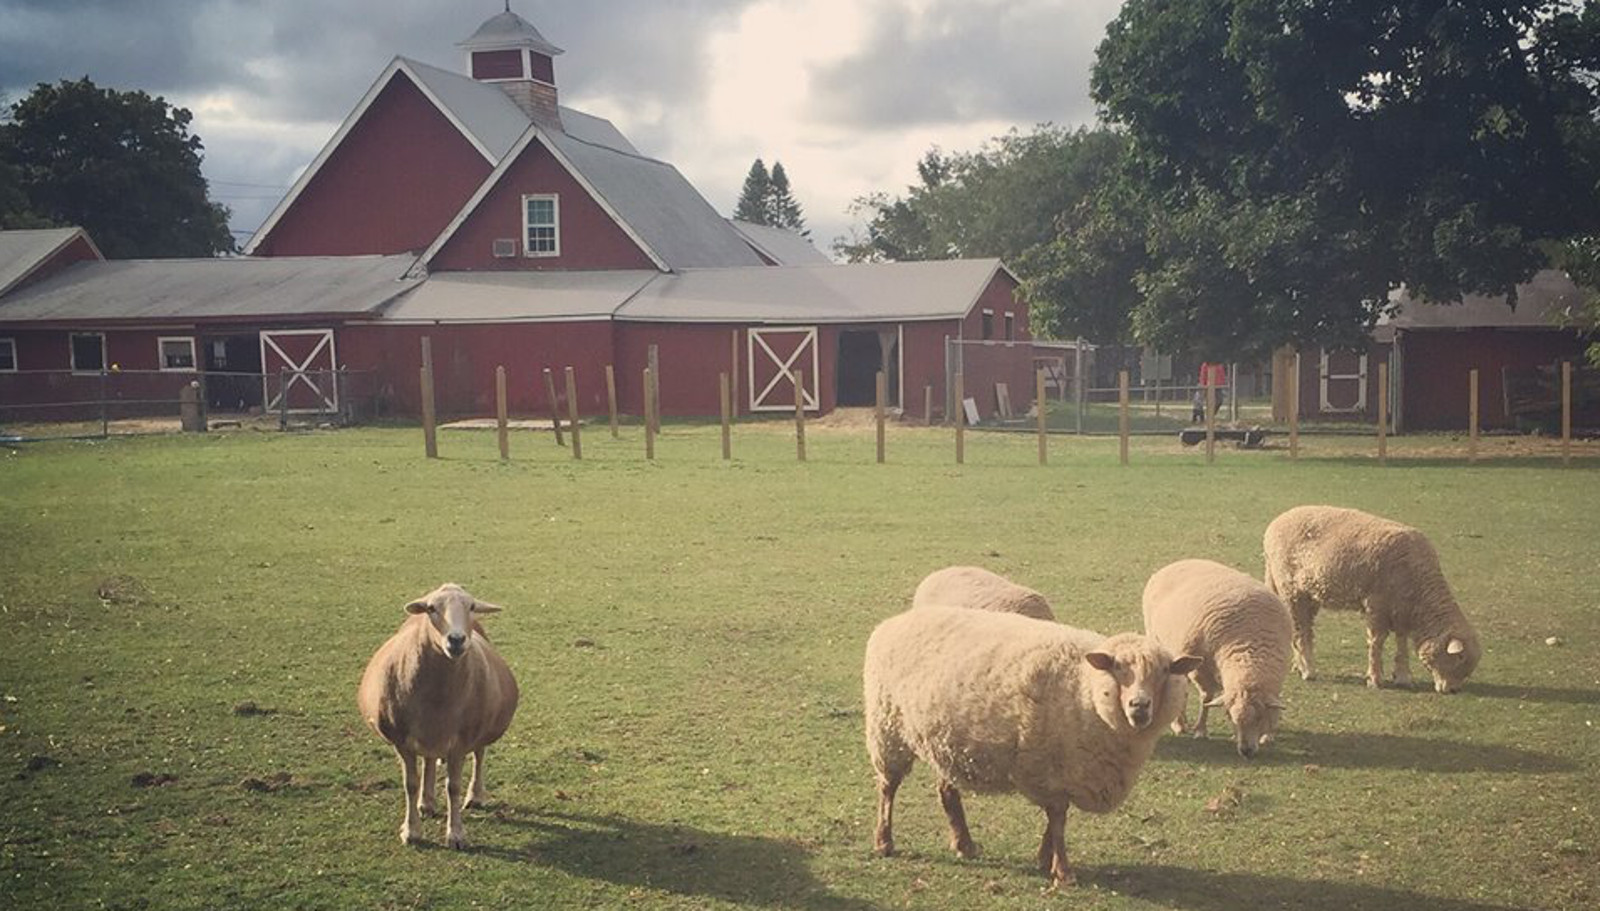 Former Dairy Farm Becomes Animal Sanctuary and Home to Vegan Ice Cream Shop